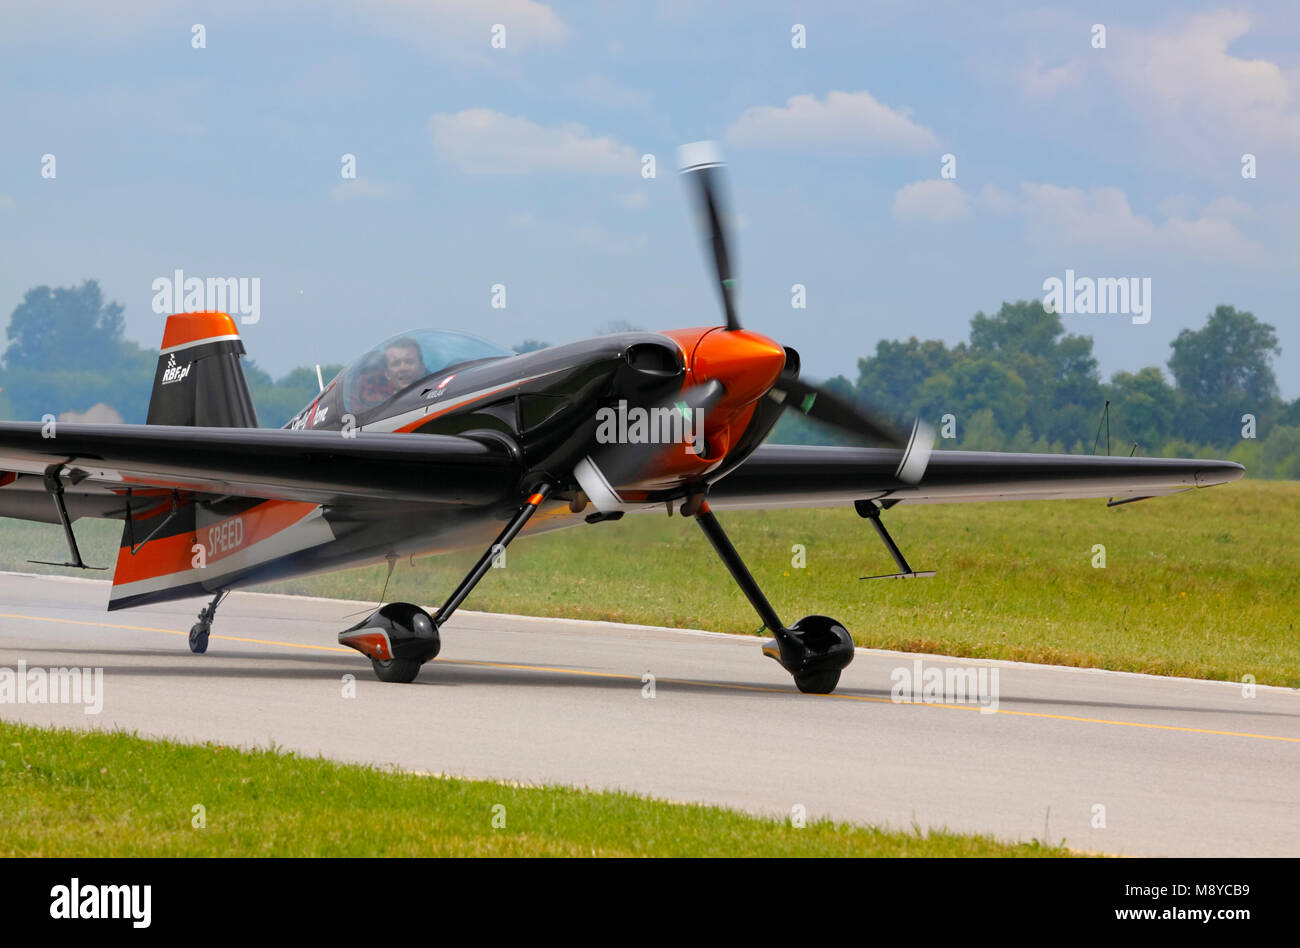 The XtremeAir Sbach 300 on runway during International Air Show at the 90th Jubilee of The Polish Air Force Academy - Stock Image